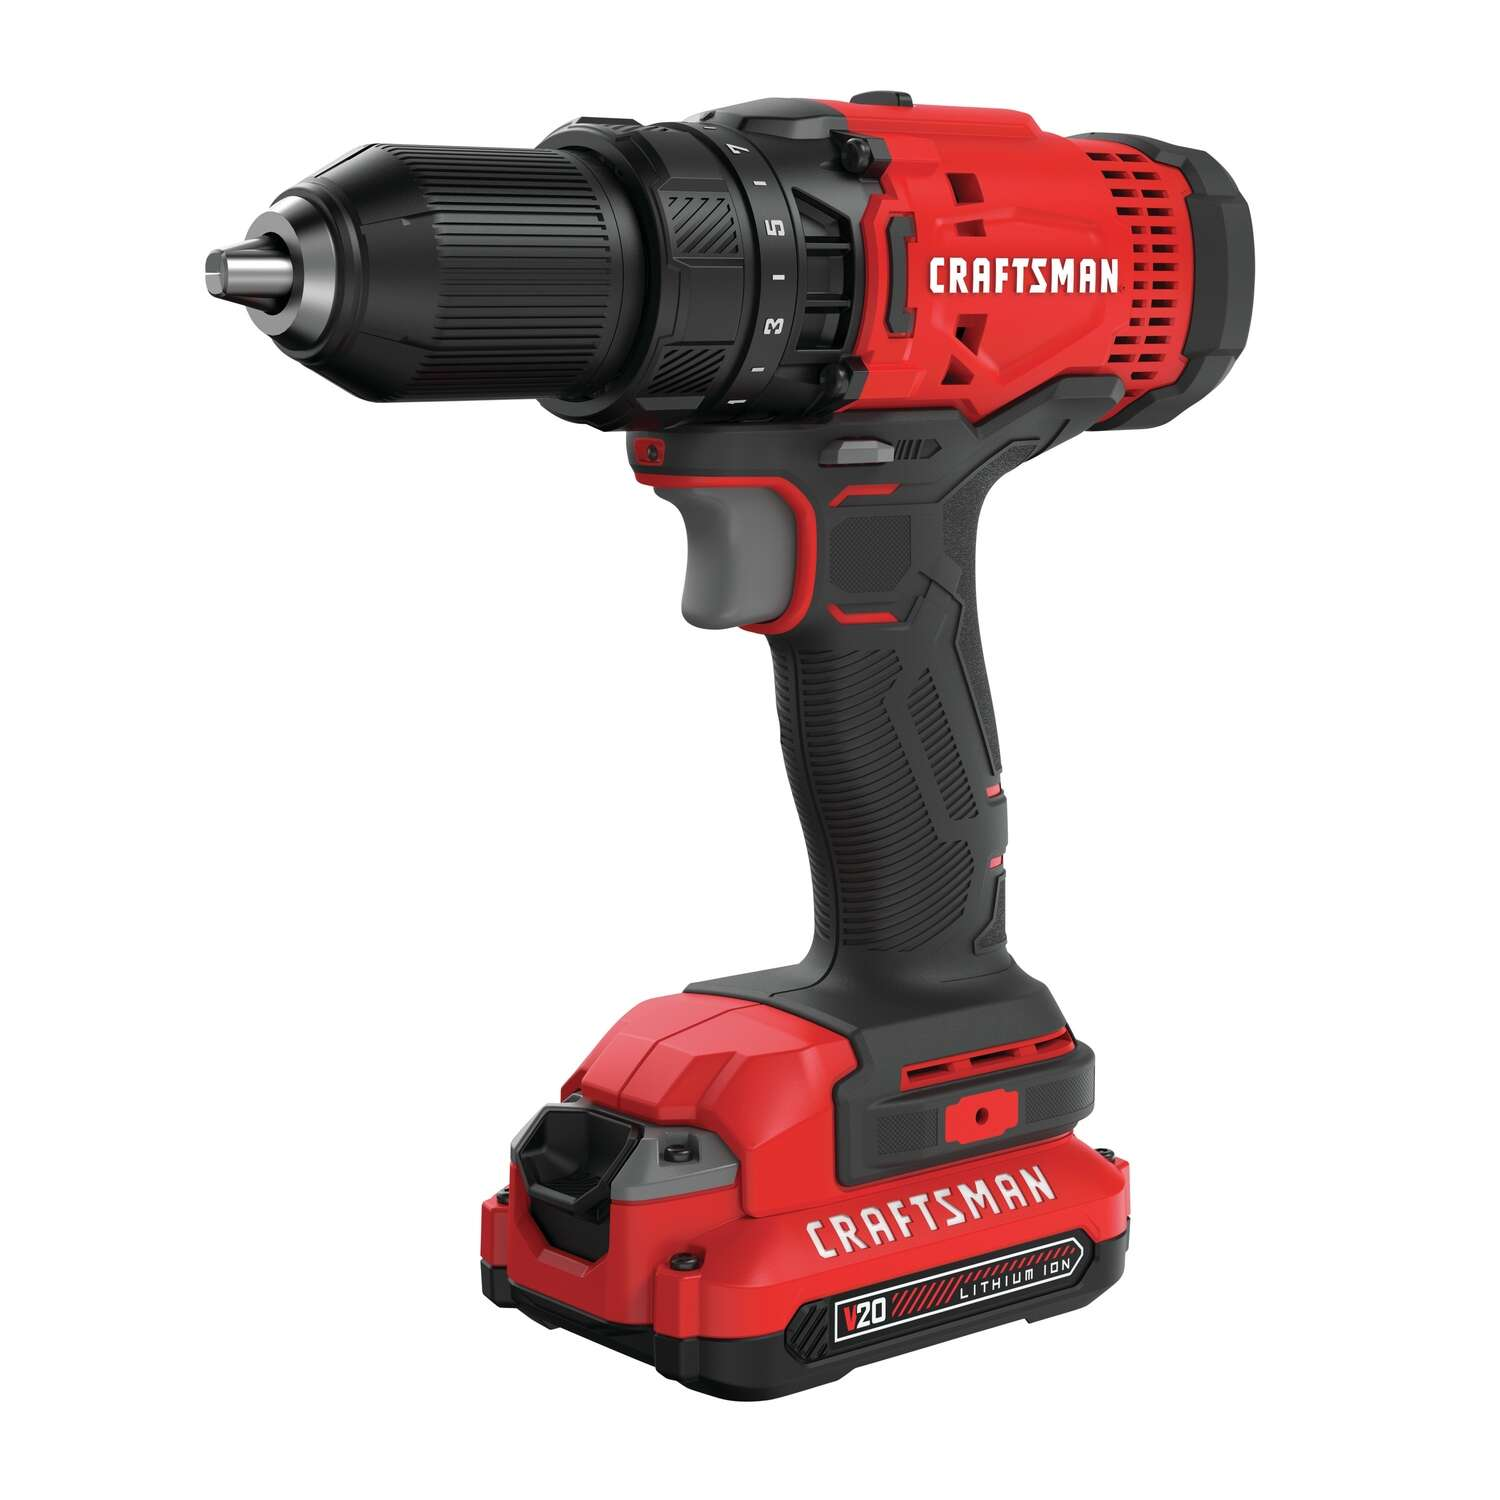 Craftsman  20 volt 1/2 in. Brushed  Cordless Compact Drill/Driver